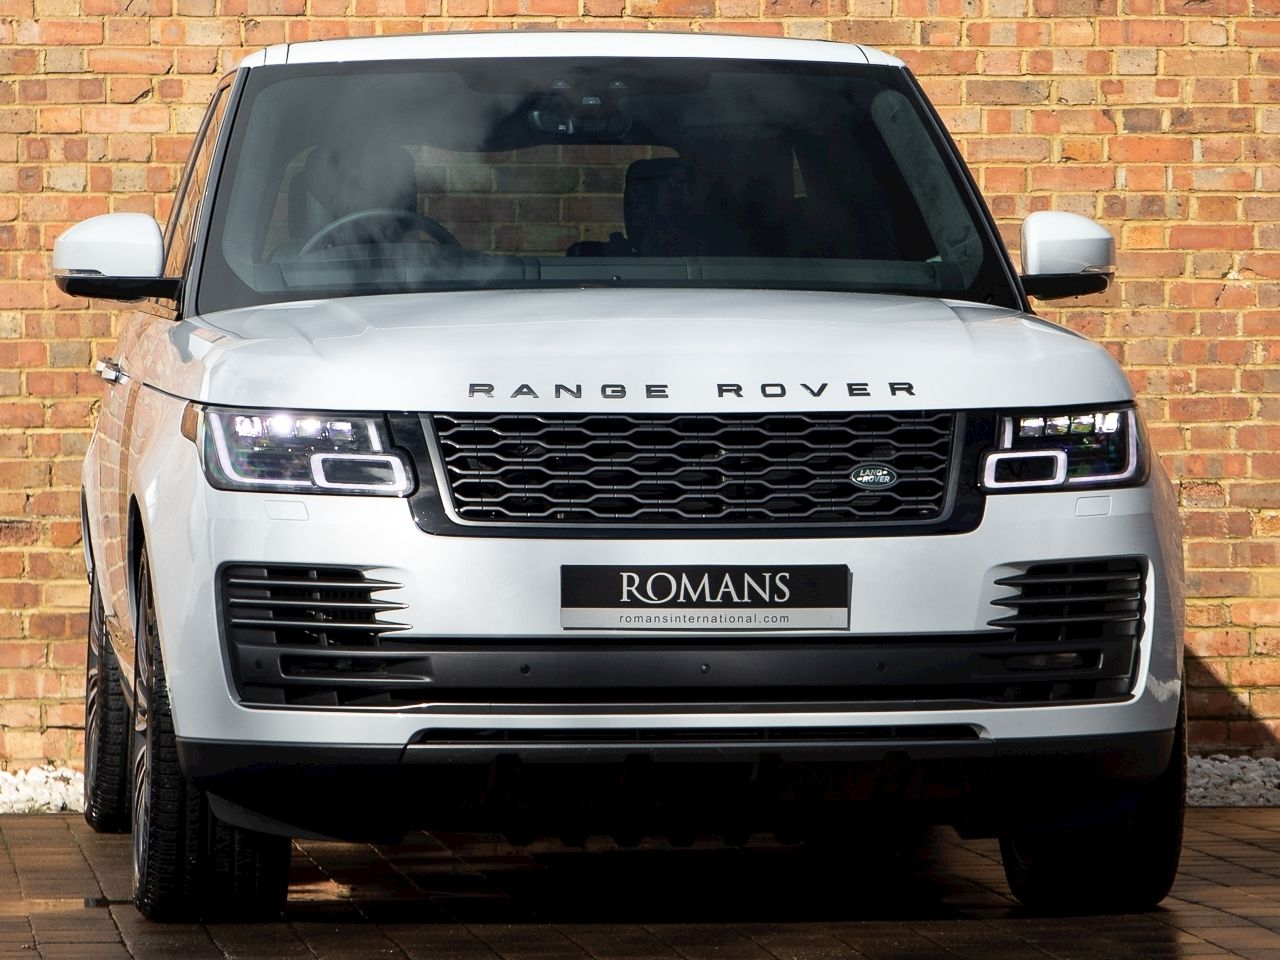 Pin by Leo Mureithi on dream car in 2020 Range rover